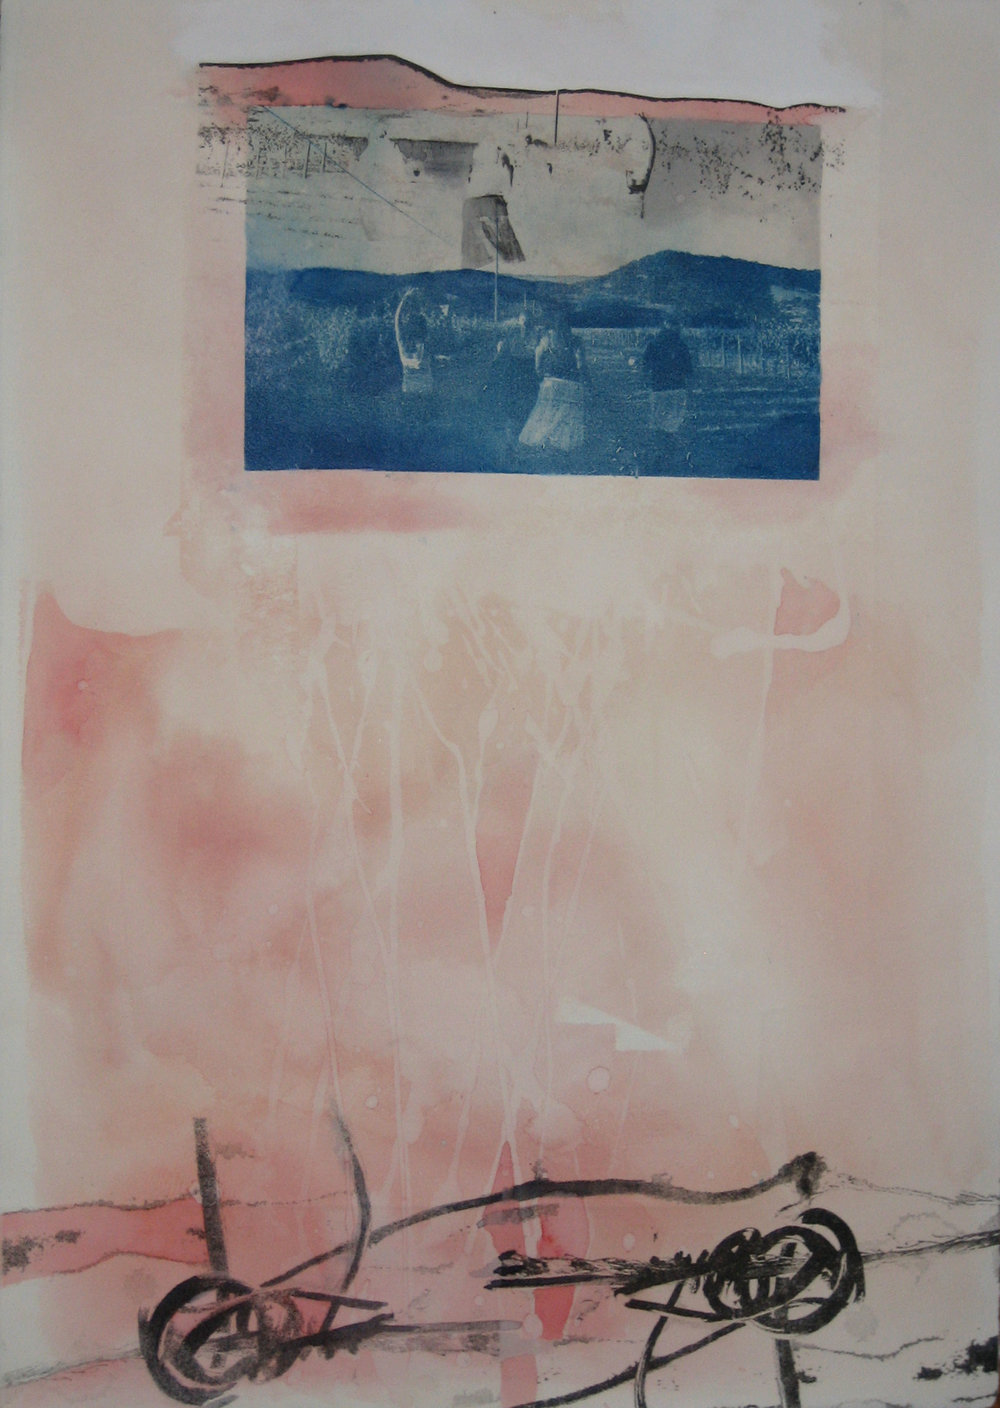 untitled (pinkandblue) , 2008, cyanotype, xerox transfer, watercolor on paper, 20 x 26 inches